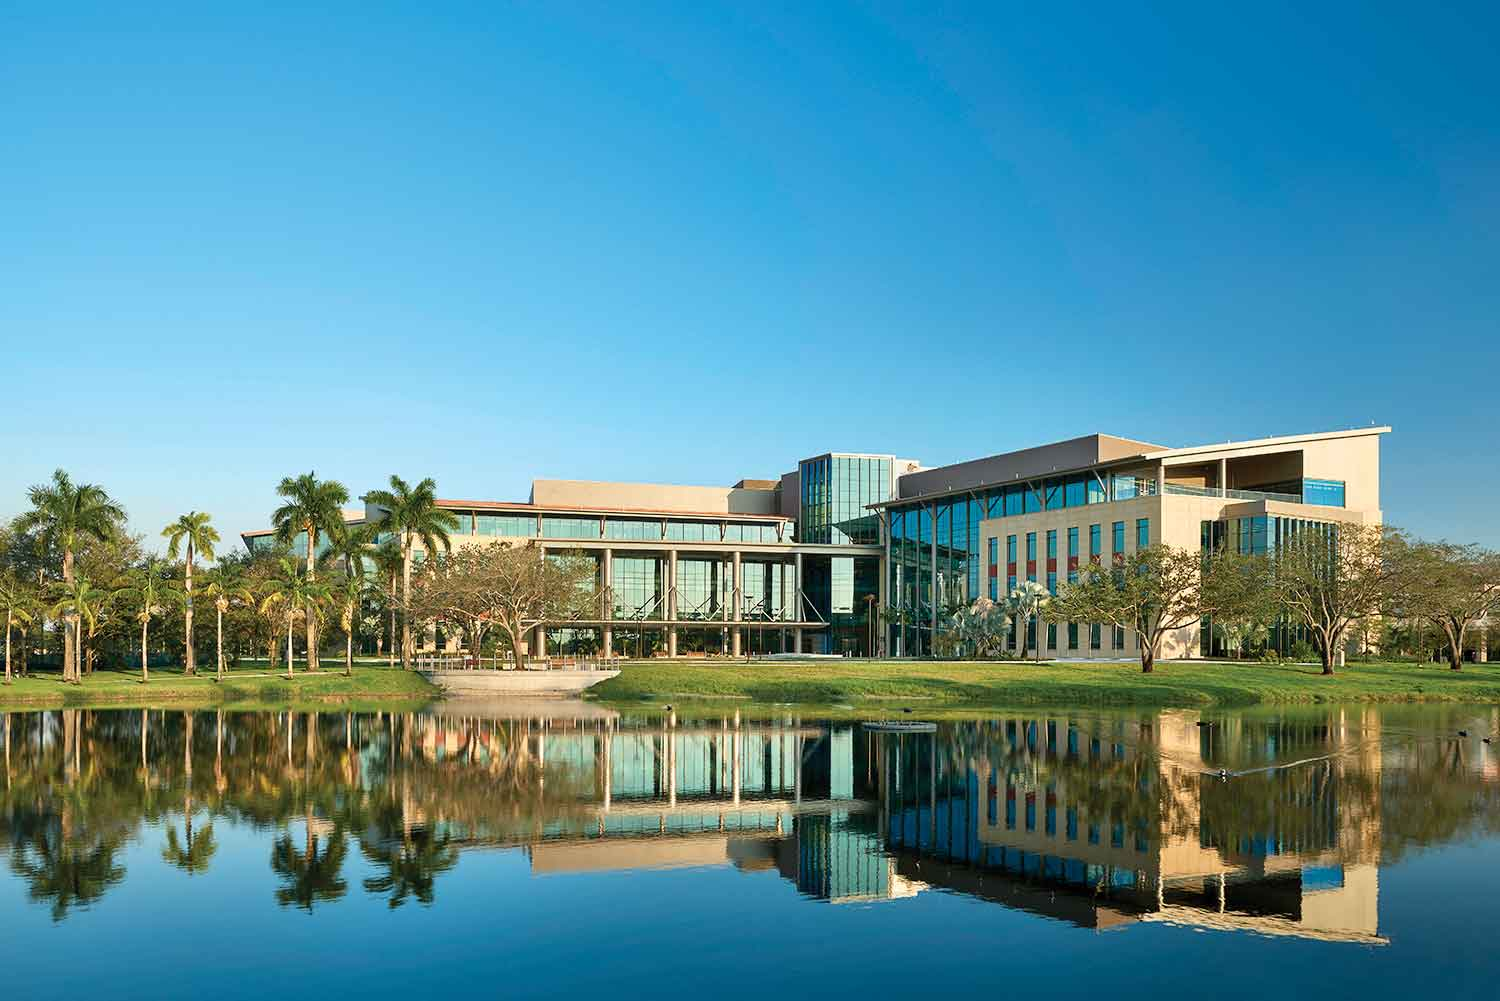 Miami Cancer Institute has 55 clinical trials ongoing